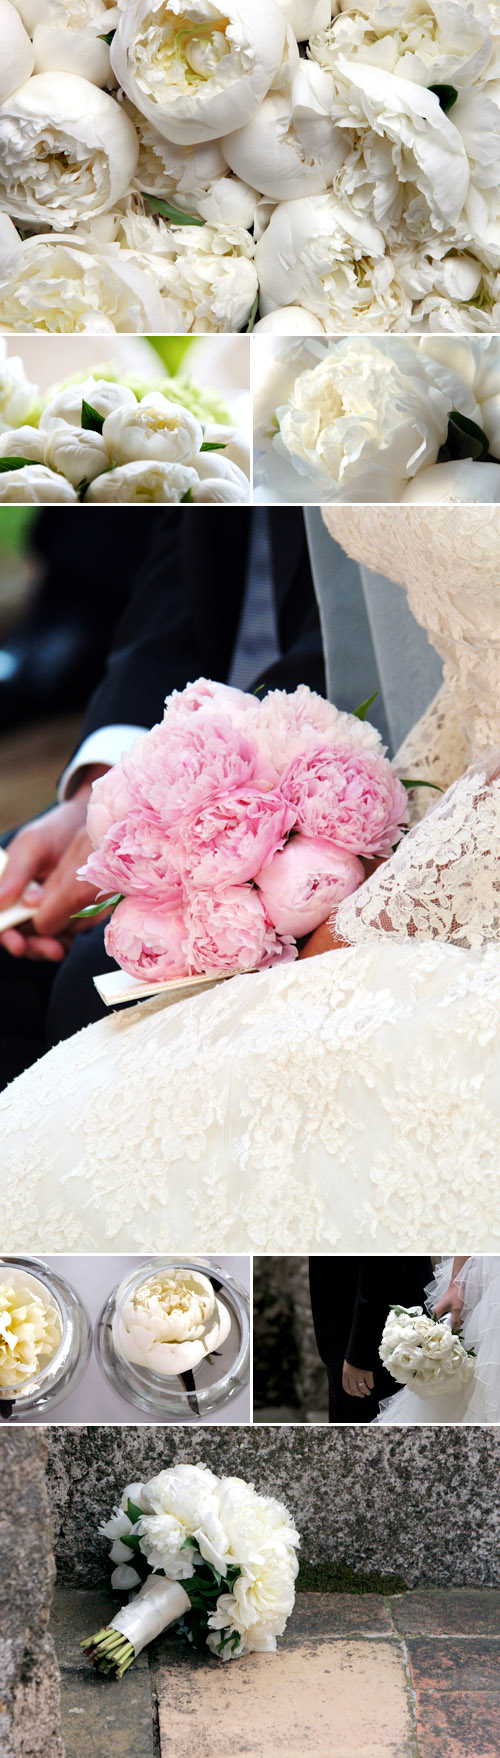 spring wedding flowers - pink and white peonies in bridal bouquets and wedding decor